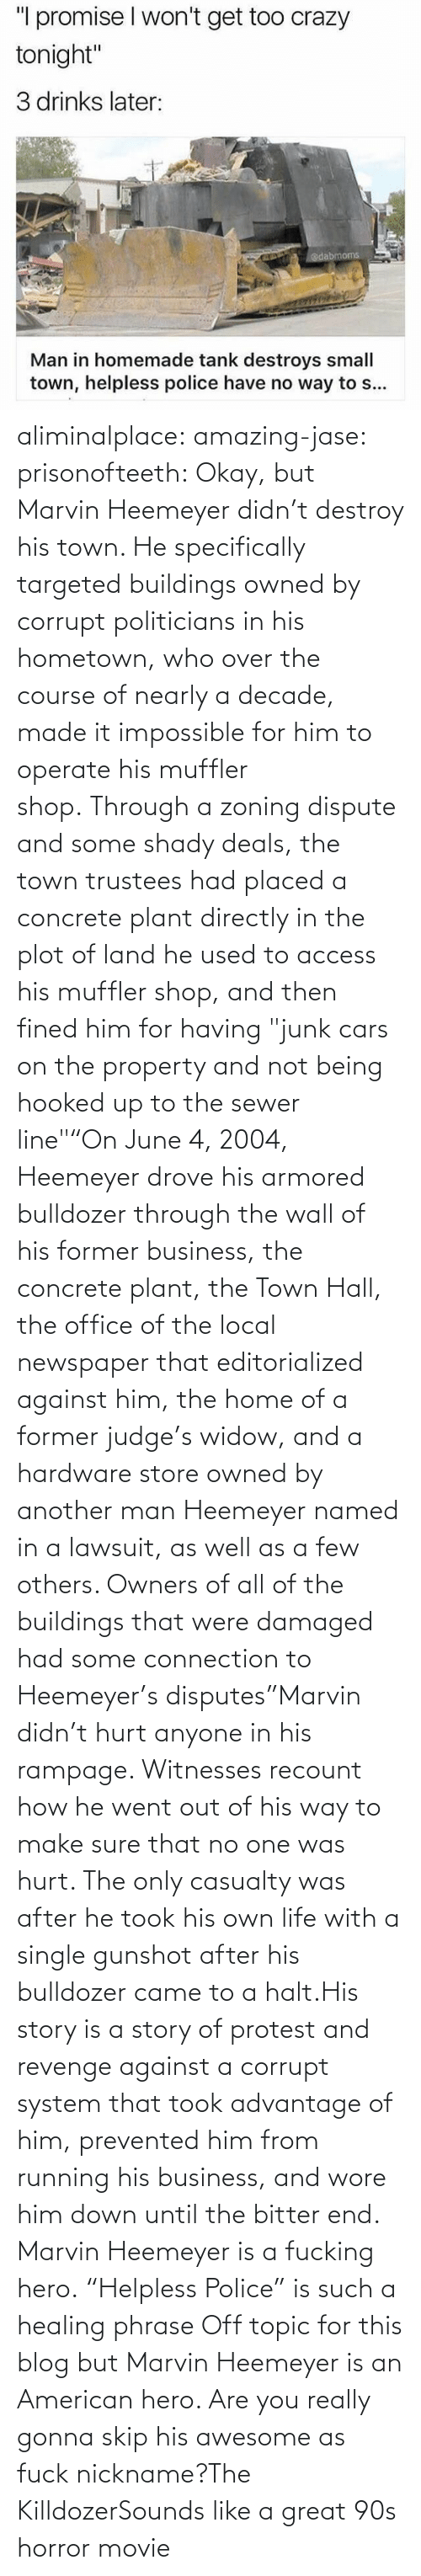 "and then: aliminalplace: amazing-jase:  prisonofteeth: Okay, but Marvin Heemeyer didn't destroy his town. He specifically targeted buildings owned by corrupt politicians in his hometown, who over the course of nearly a decade, made it impossible for him to operate his muffler shop. Through a zoning dispute and some shady deals, the town trustees had placed a concrete plant directly in the plot of land he used to access his muffler shop, and then fined him for having ""junk cars on the property and not being hooked up to the sewer line""""On June 4, 2004, Heemeyer drove his armored bulldozer through the wall of his former business, the concrete plant, the Town Hall, the office of the local newspaper that editorialized against him, the home of a former judge's widow, and a hardware store owned by another man Heemeyer named in a lawsuit, as well as a few others. Owners of all of the buildings that were damaged had some connection to Heemeyer's disputes""Marvin didn't hurt anyone in his rampage. Witnesses recount how he went out of his way to make sure that no one was hurt. The only casualty was after he took his own life with a single gunshot after his bulldozer came to a halt.His story is a story of protest and revenge against a corrupt system that took advantage of him, prevented him from running his business, and wore him down until the bitter end. Marvin Heemeyer is a fucking hero. ""Helpless Police"" is such a healing phrase    Off topic for this blog but Marvin Heemeyer is an American hero.     Are you really gonna skip his awesome as fuck nickname?The KilldozerSounds like a great 90s horror movie"